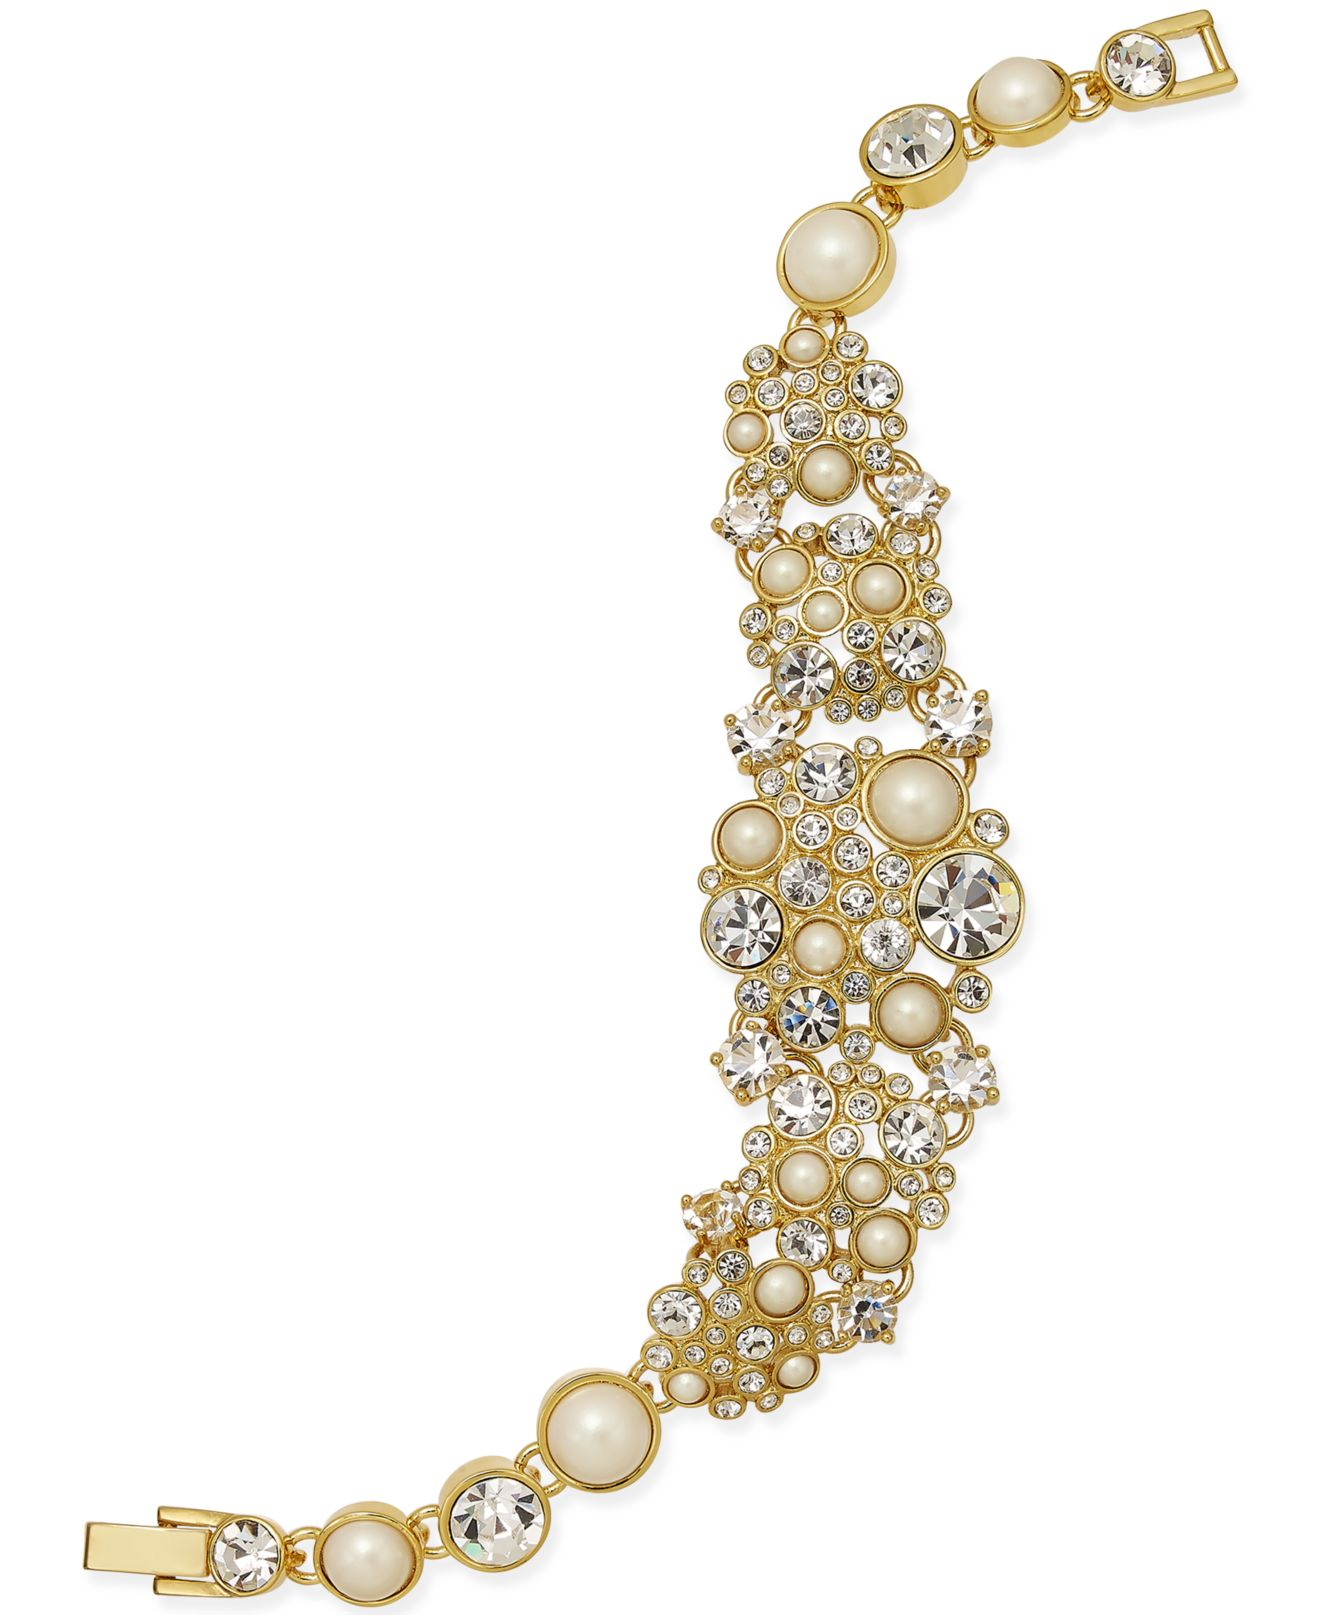 Lyst - Kate Spade Gold-tone Imitation Pearl And Crystal Bracelet in ... 7bc9ce8161